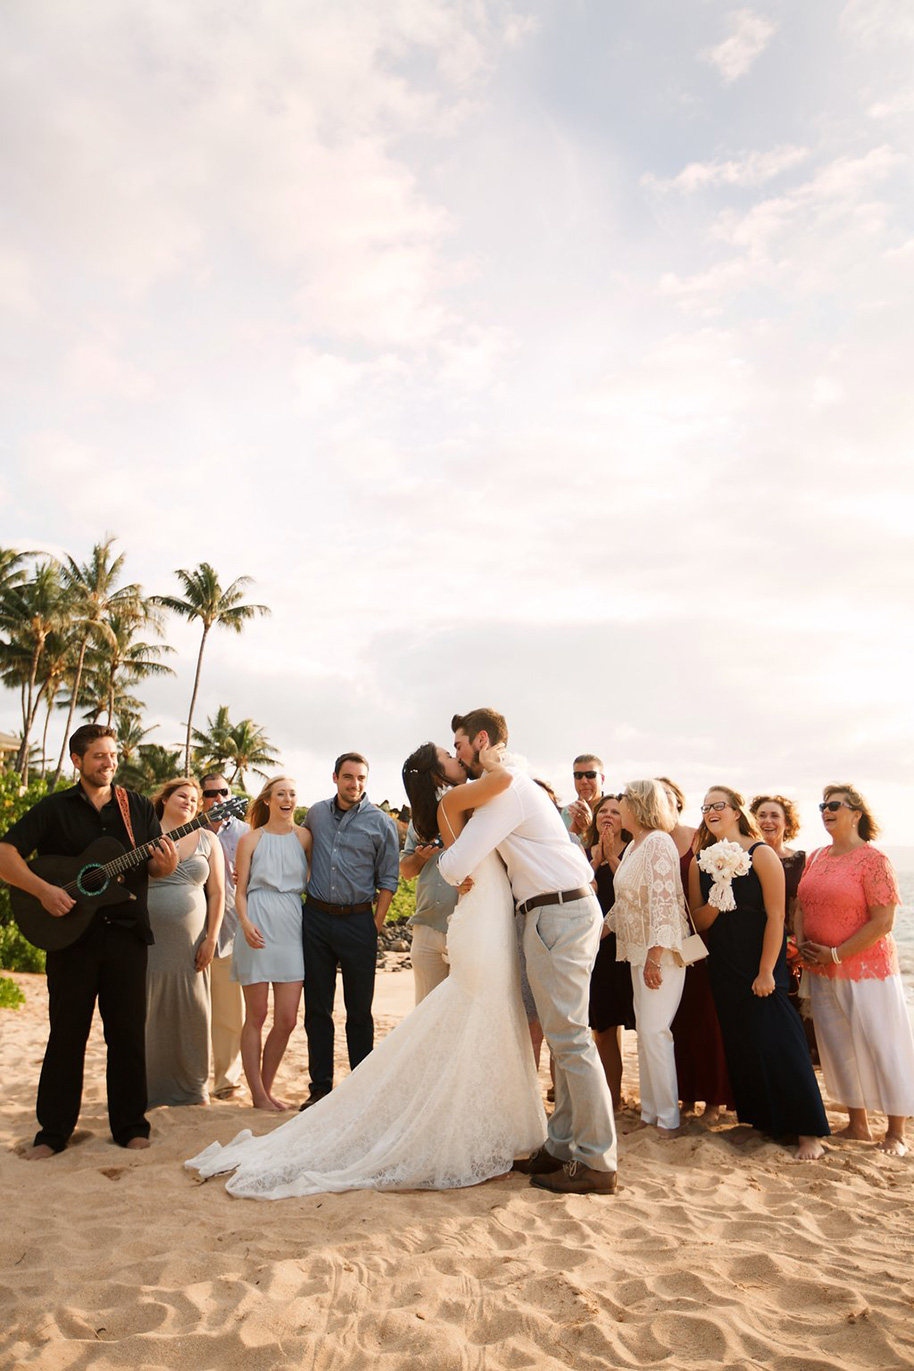 Maui-Beach-Wedding-070616-14.jpg